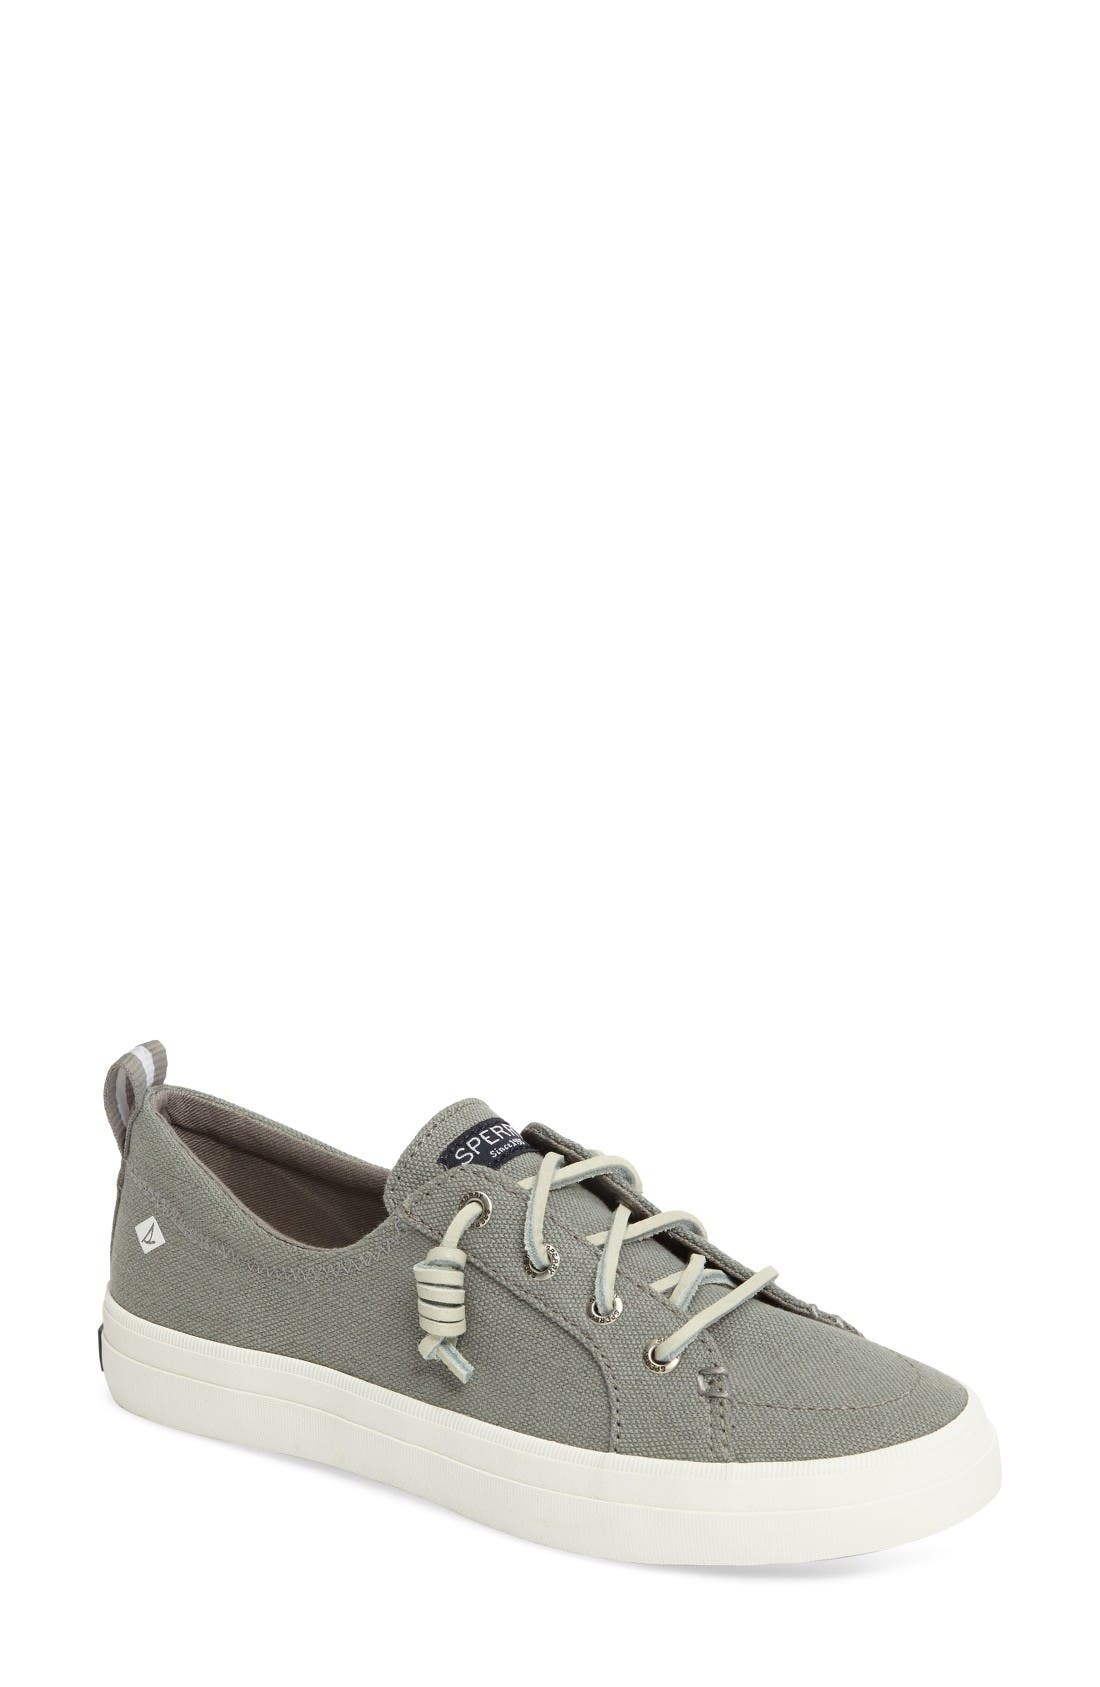 Crest Vibe Sneaker,                         Main,                         color, Grey Canvas